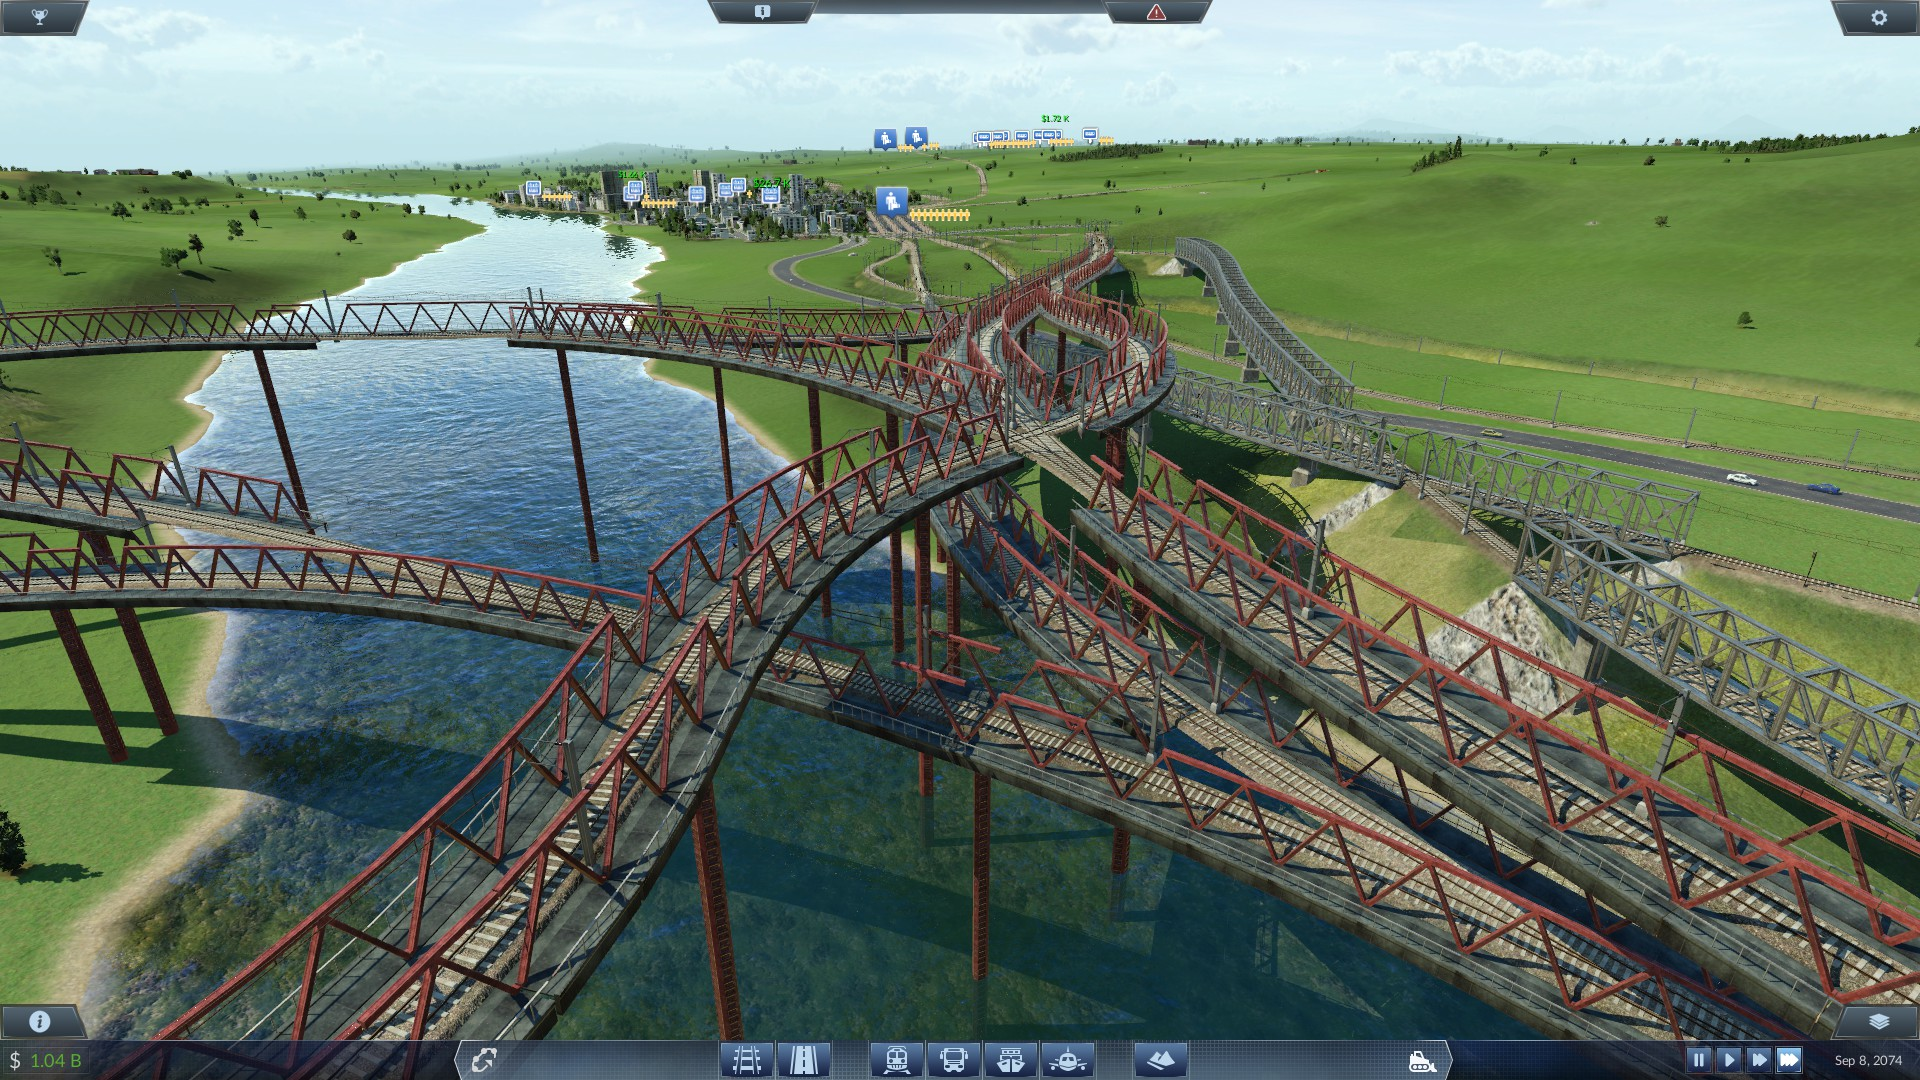 Too many bridges or nah? : TransportFever